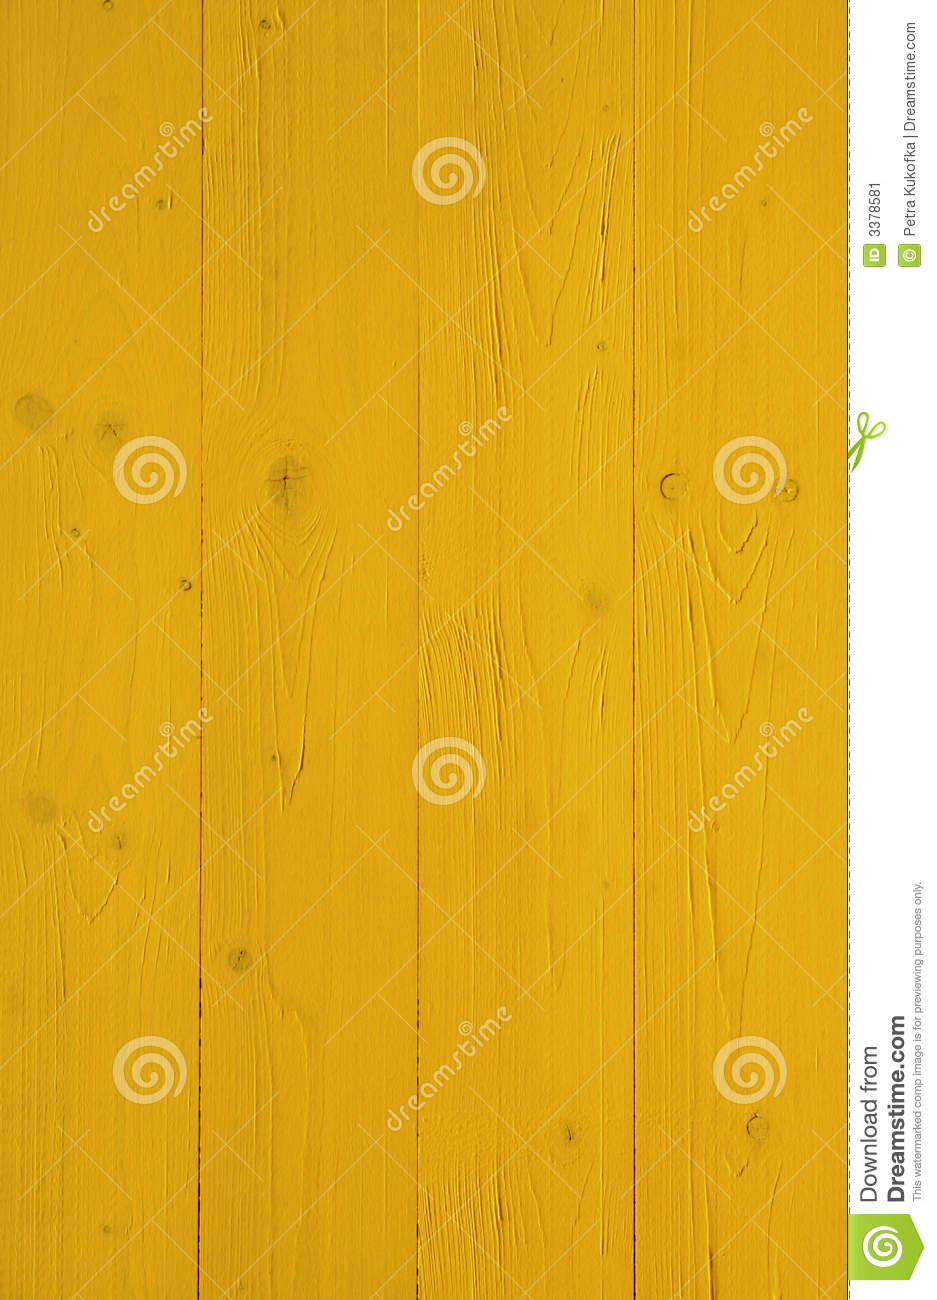 Yellow painted wooden wall